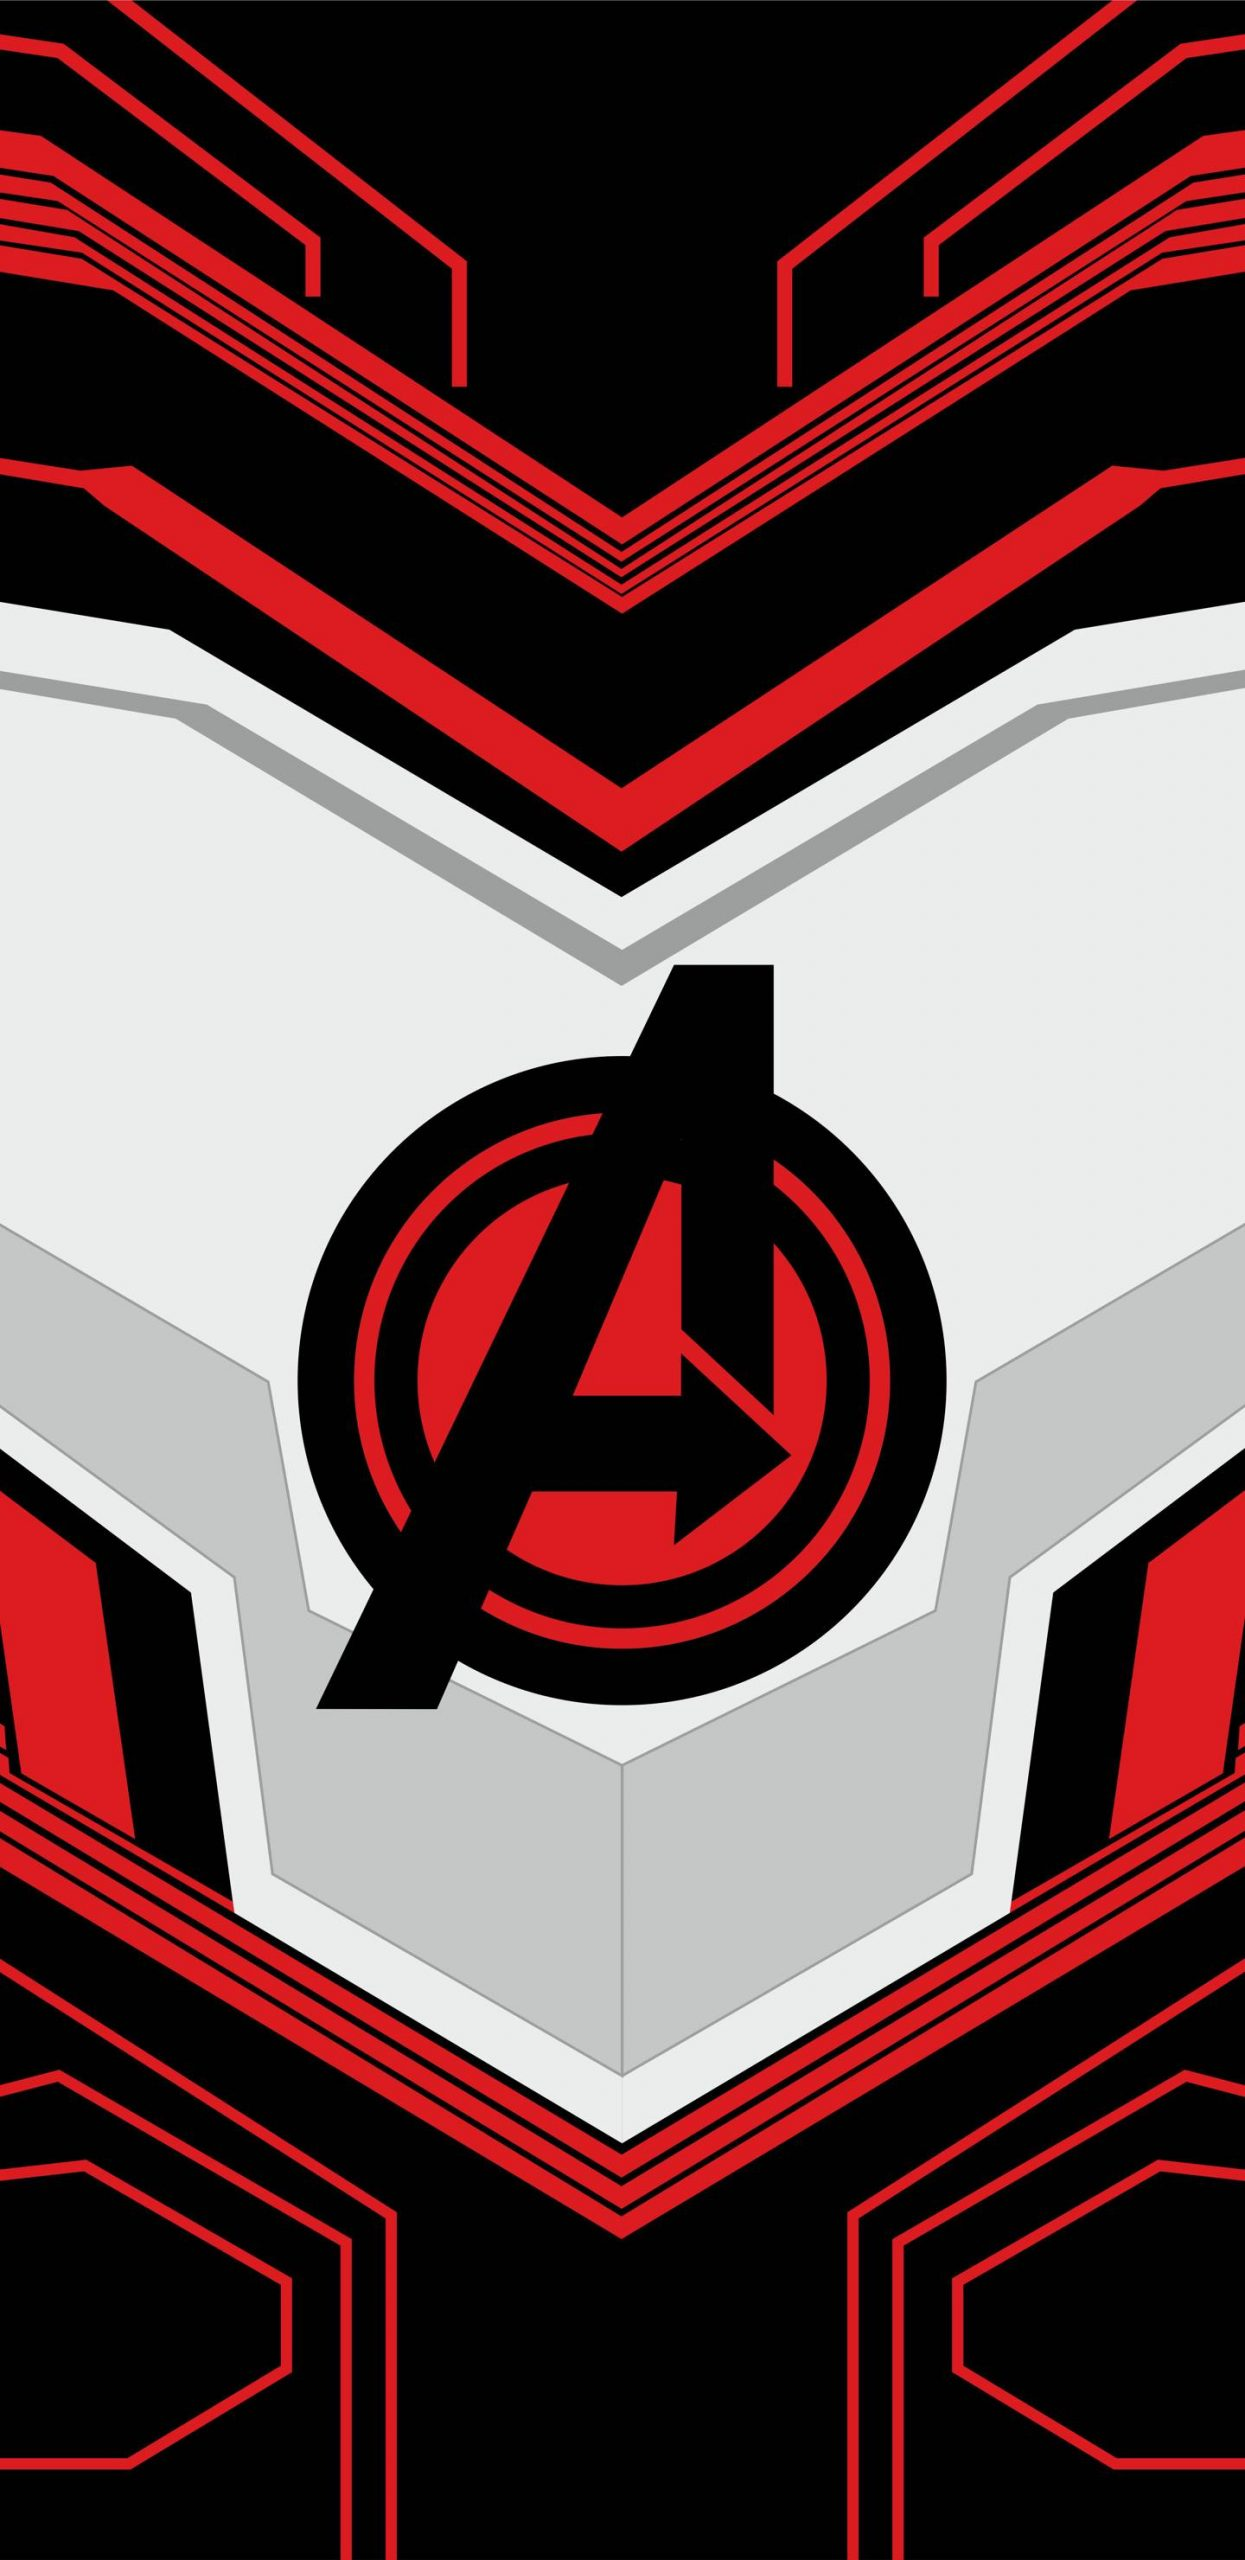 Avengers Theme iPhone Wallpaper scaled